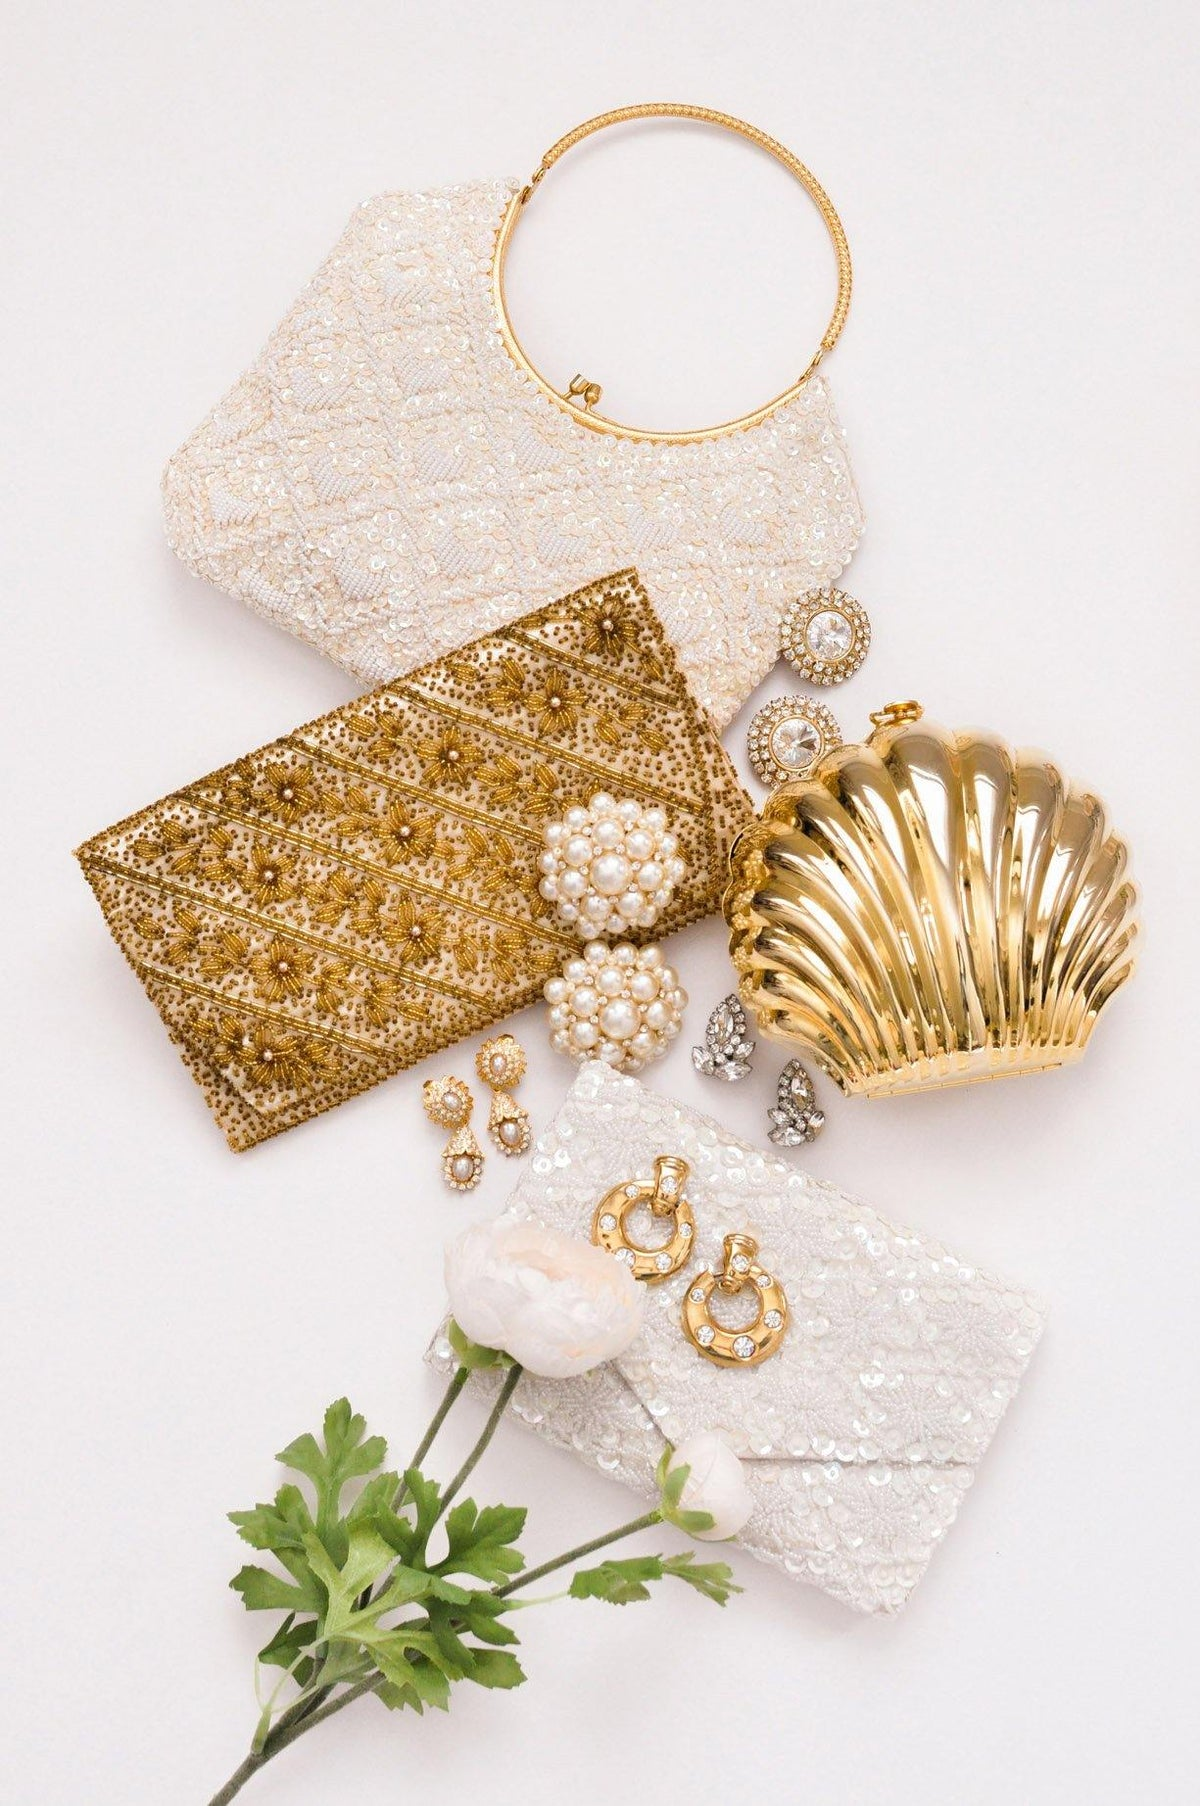 Gold Beaded Floral Clutch - Sweet & Spark